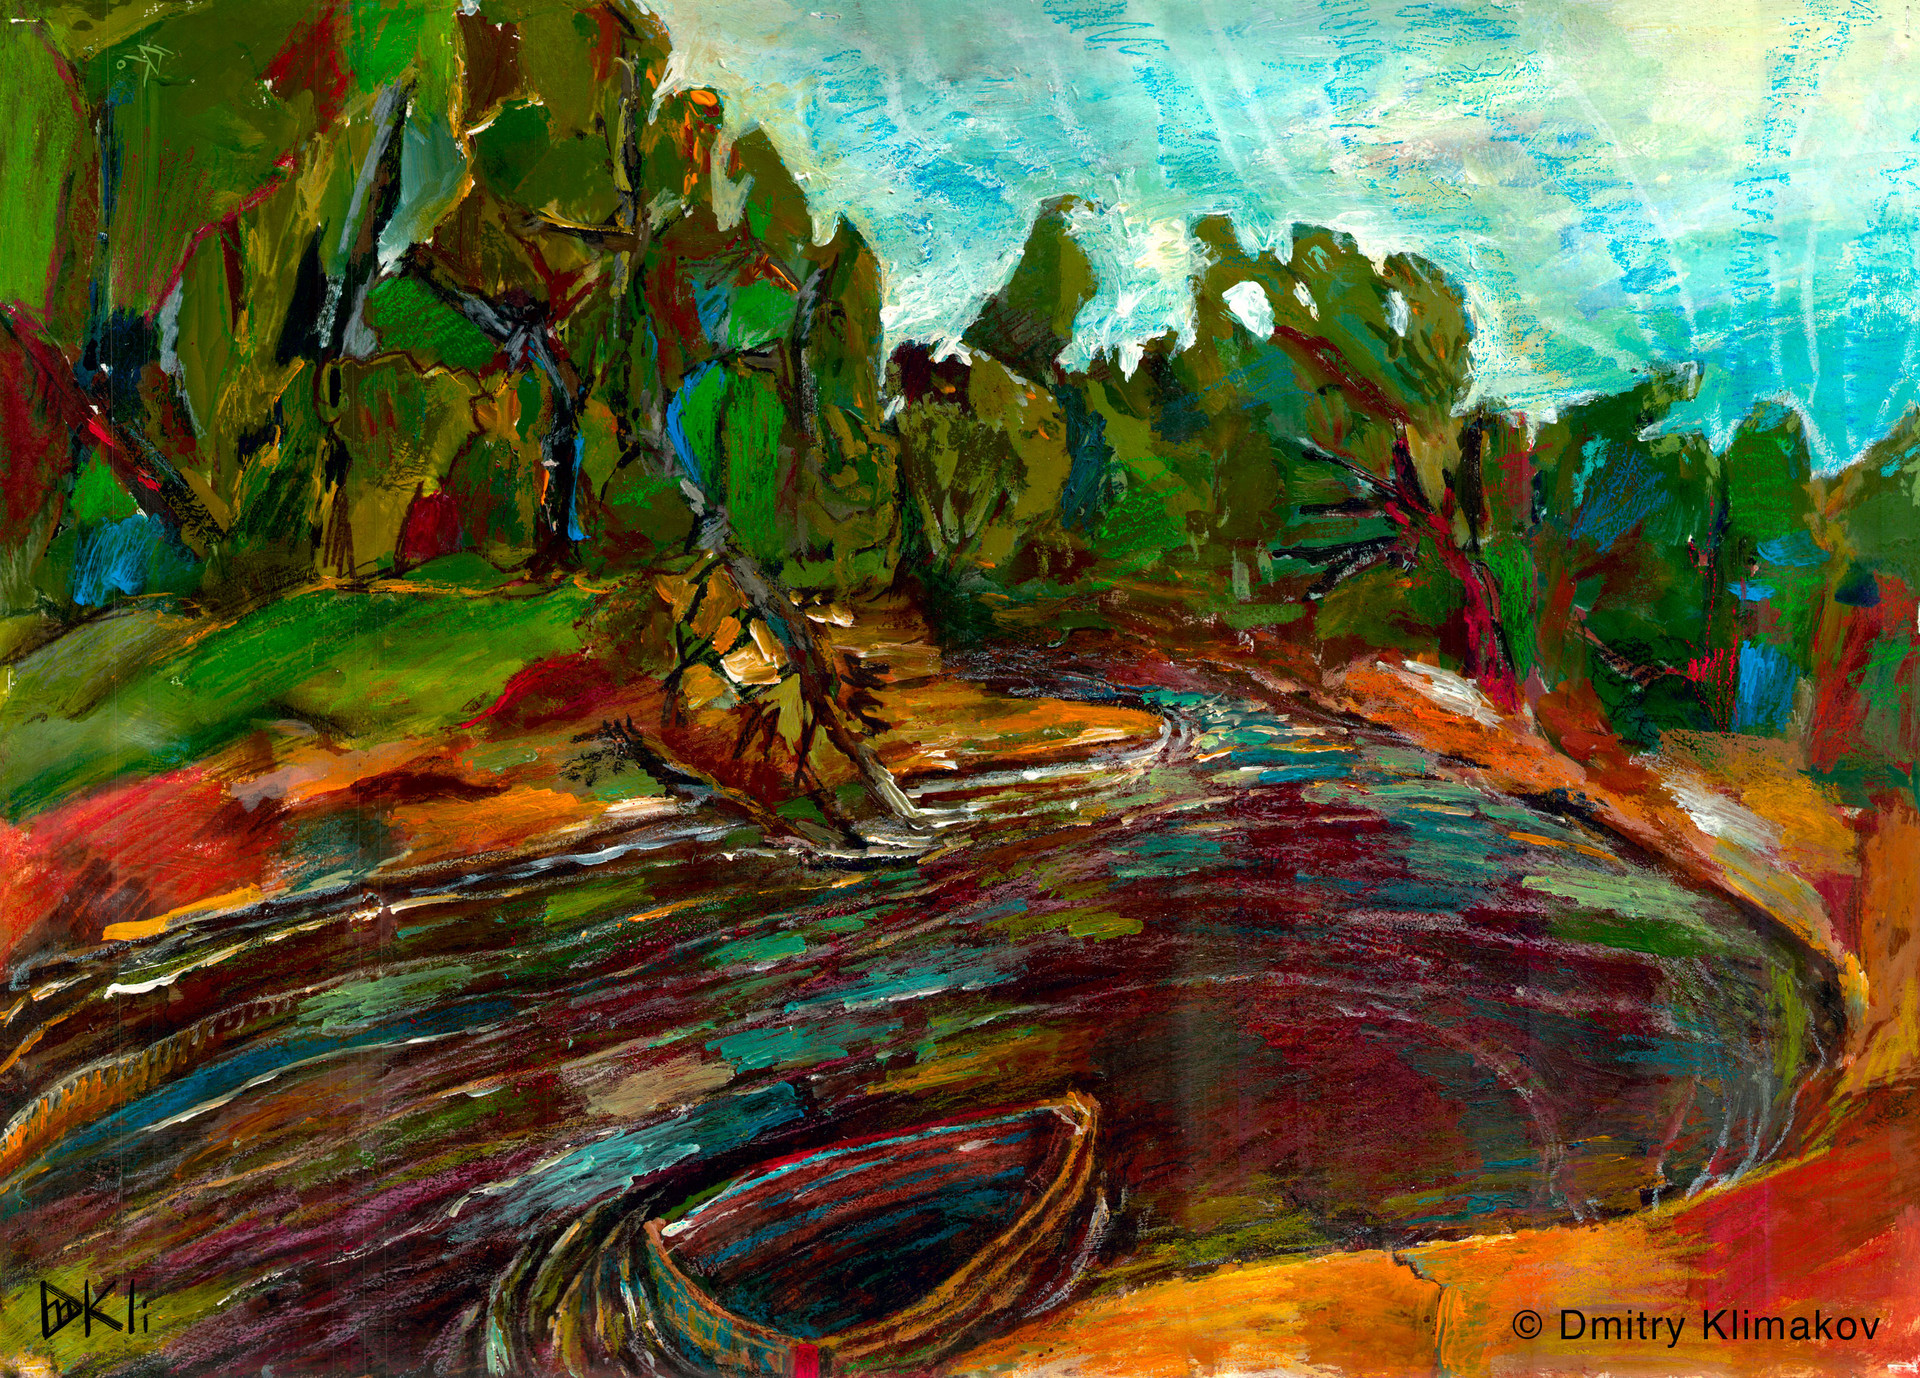 Another day on the PRA river (pastel & acrylic paint on paper).